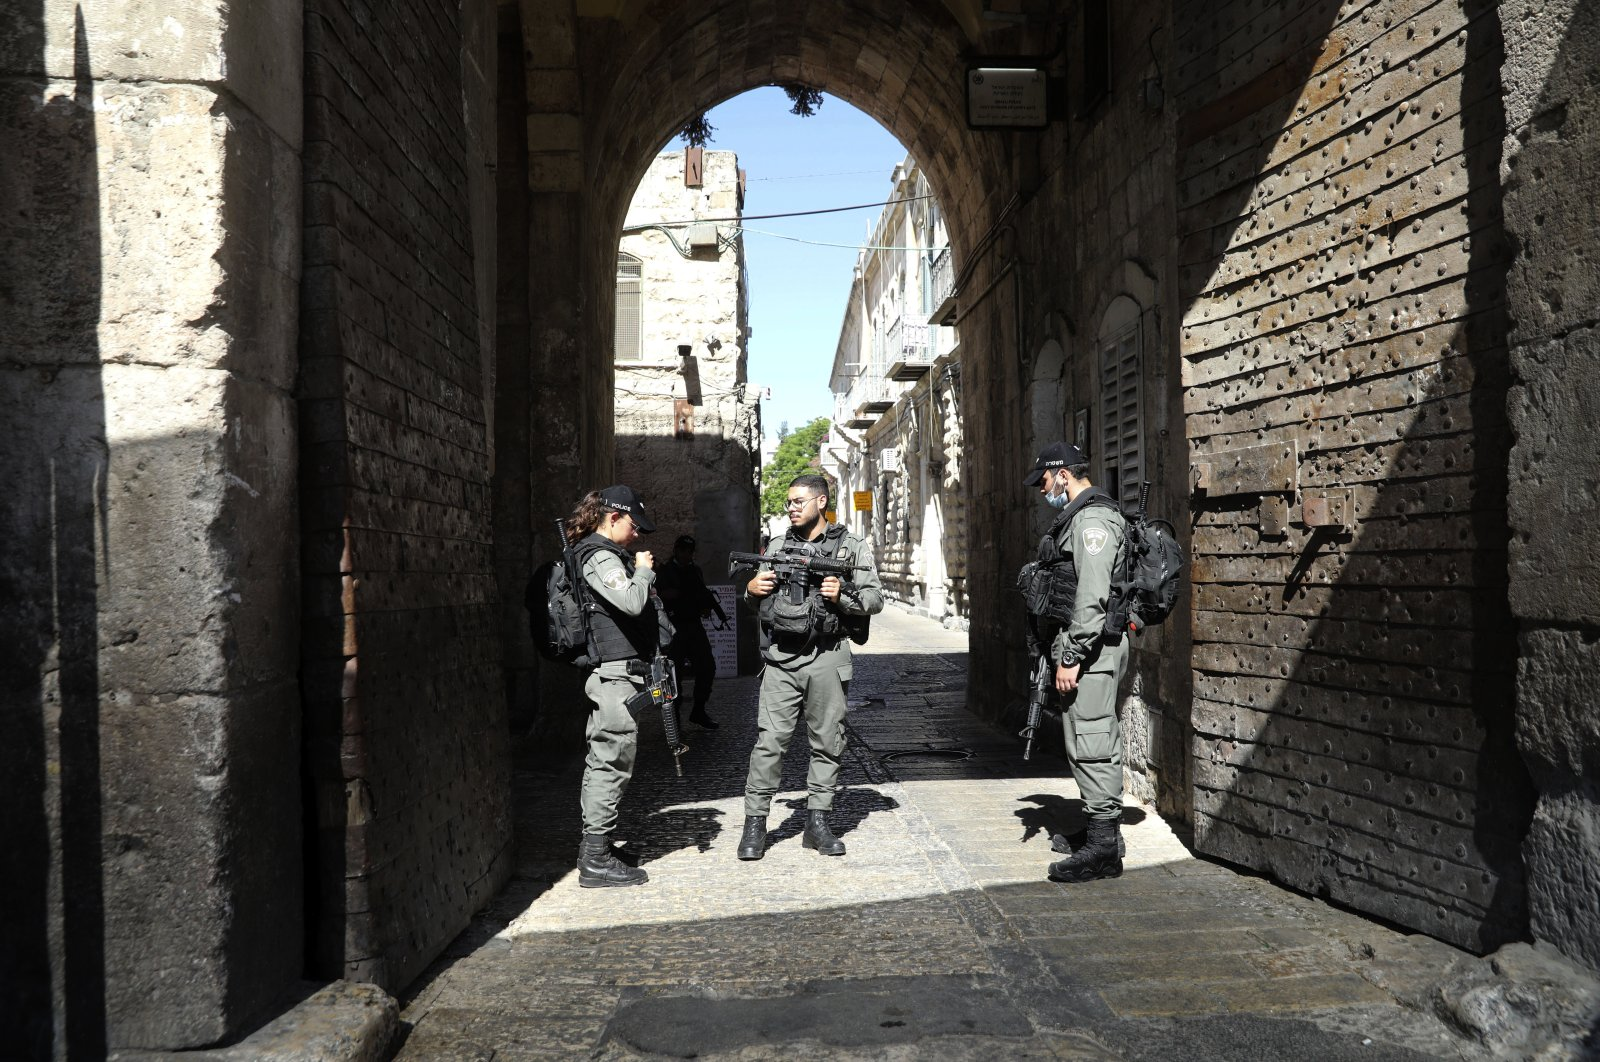 Israeli police officers secure the area of Lion's gate in Jerusalem's Old City, May 30, 2020. (AP Photo)